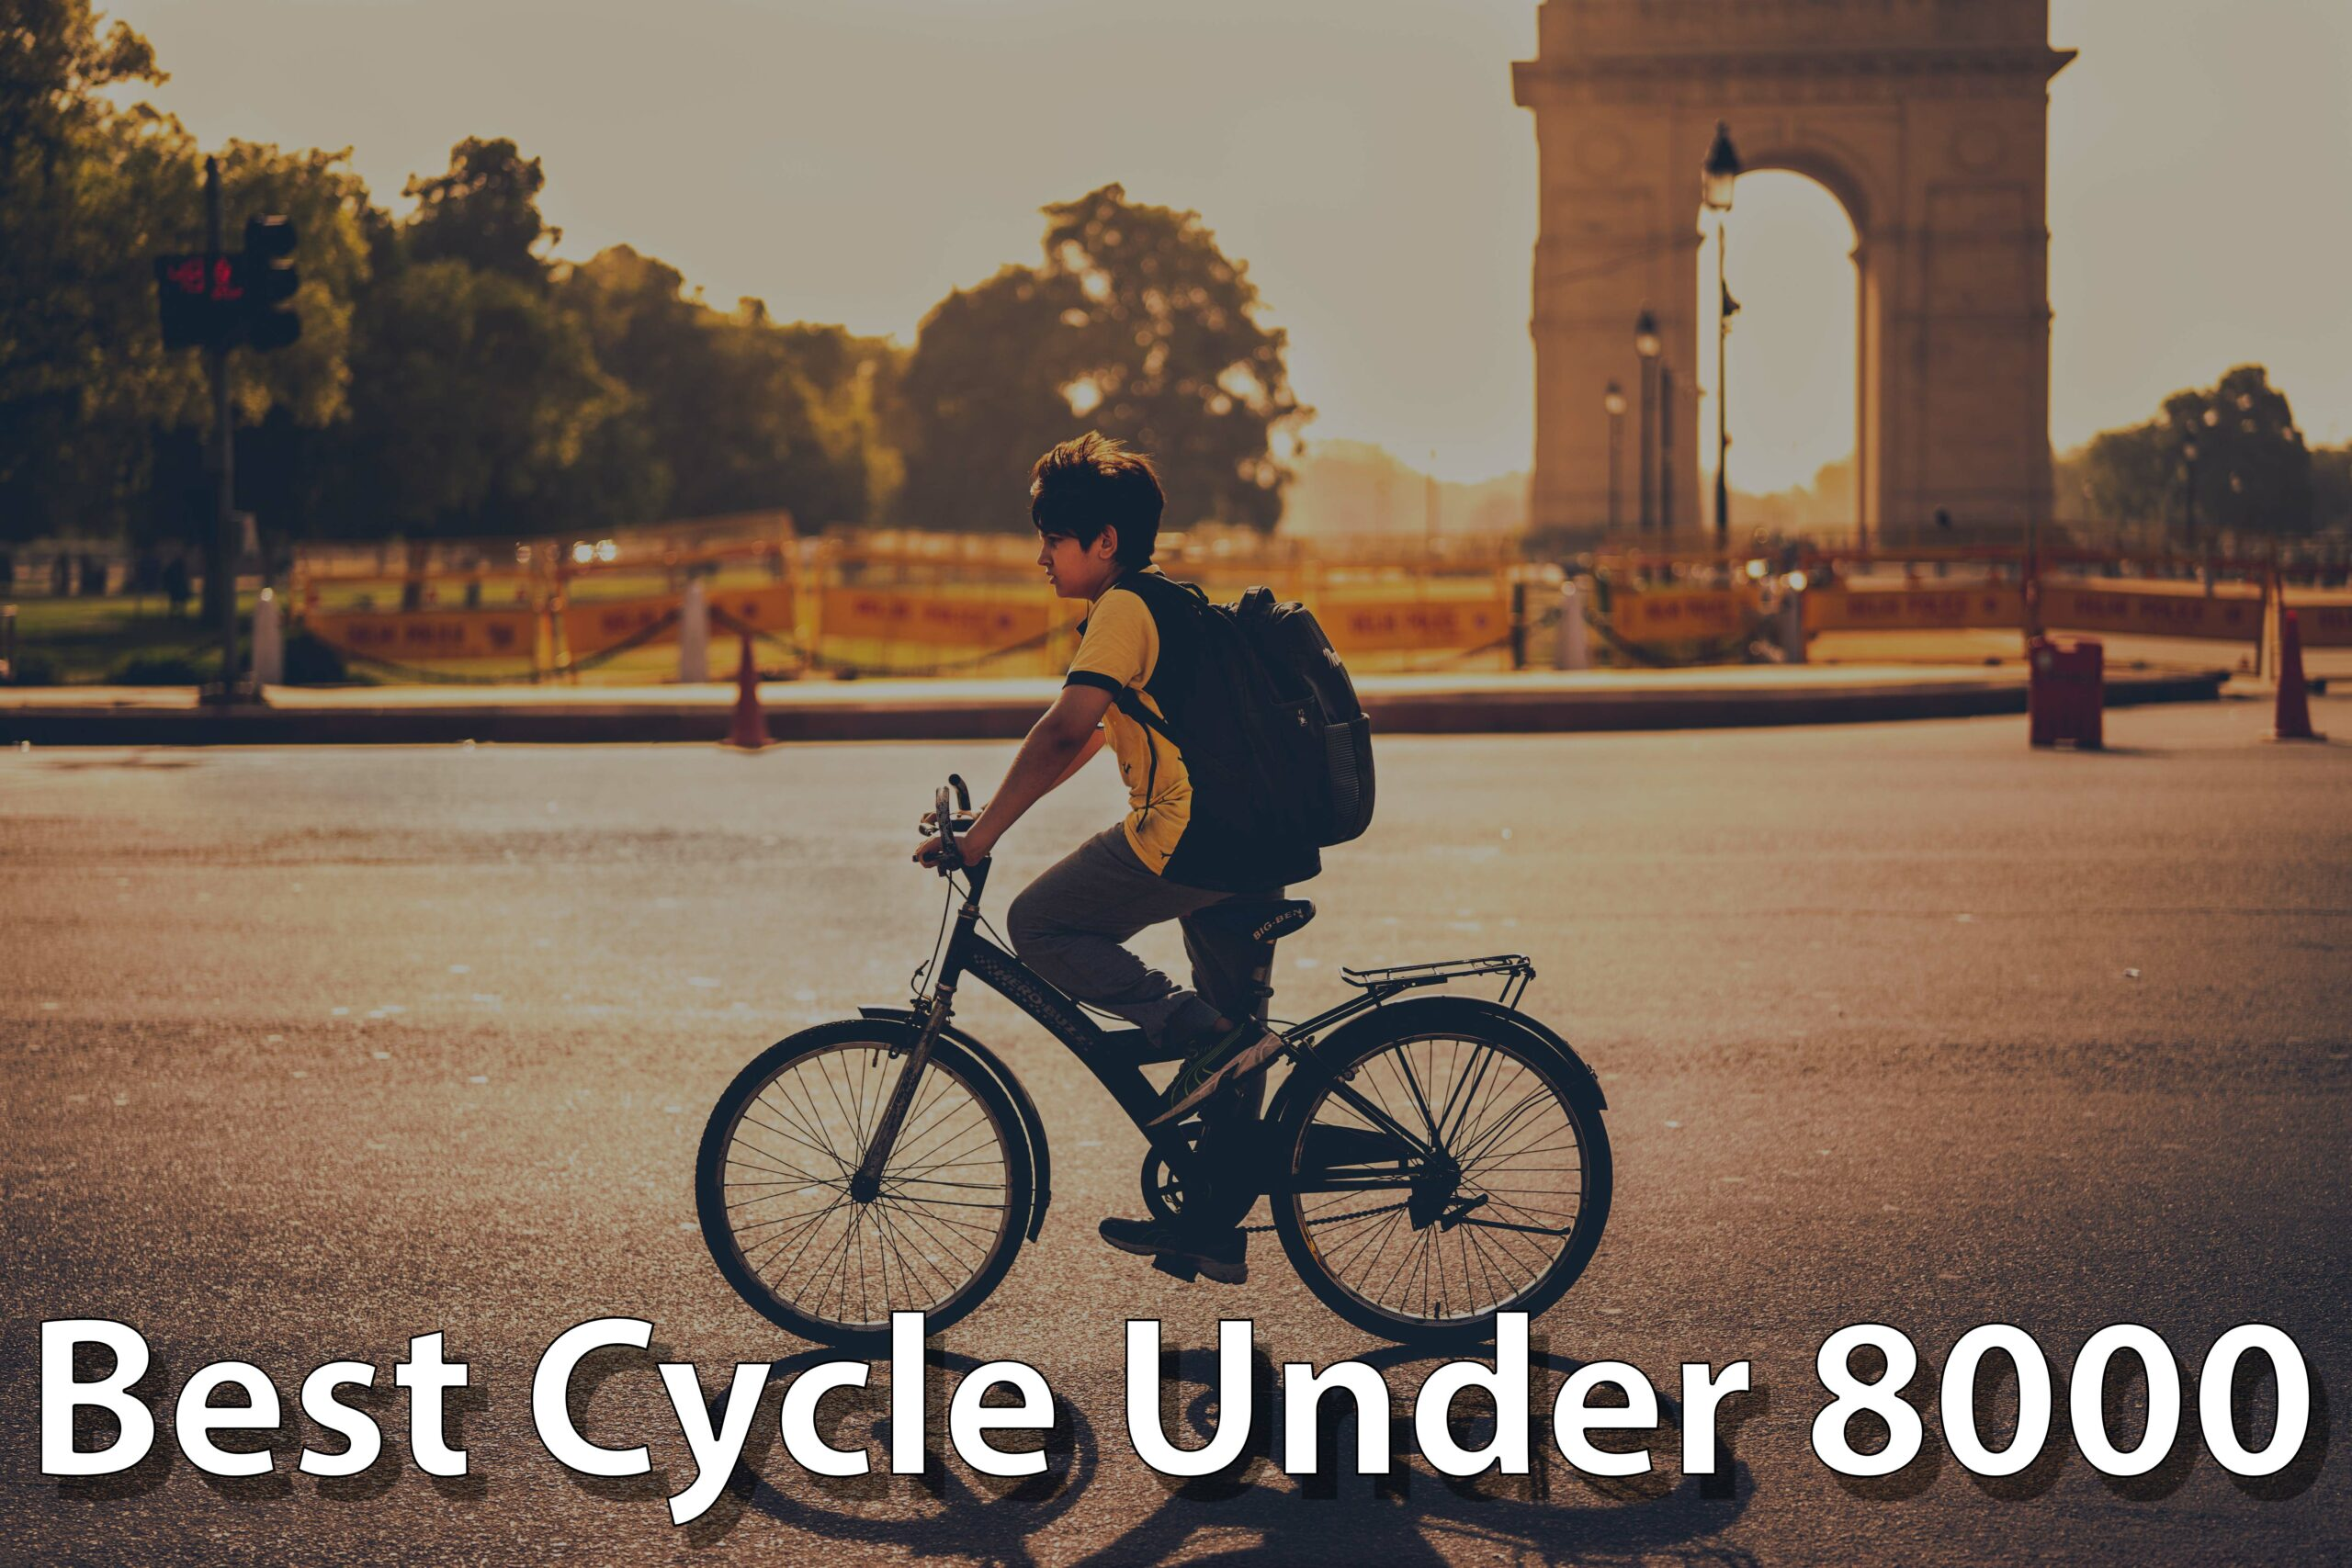 Best Cycle Under 8000